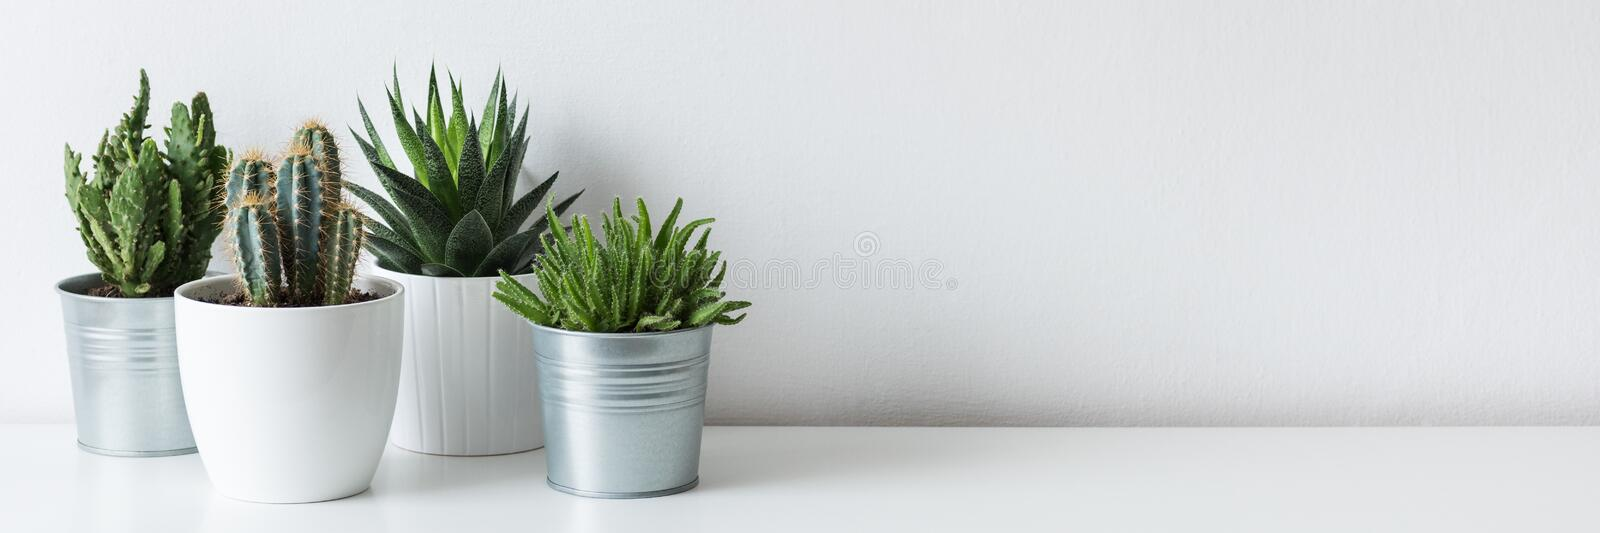 Collection of various cactus and succulent plants in different pots. Potted cactus house plants on white shelf. stock image